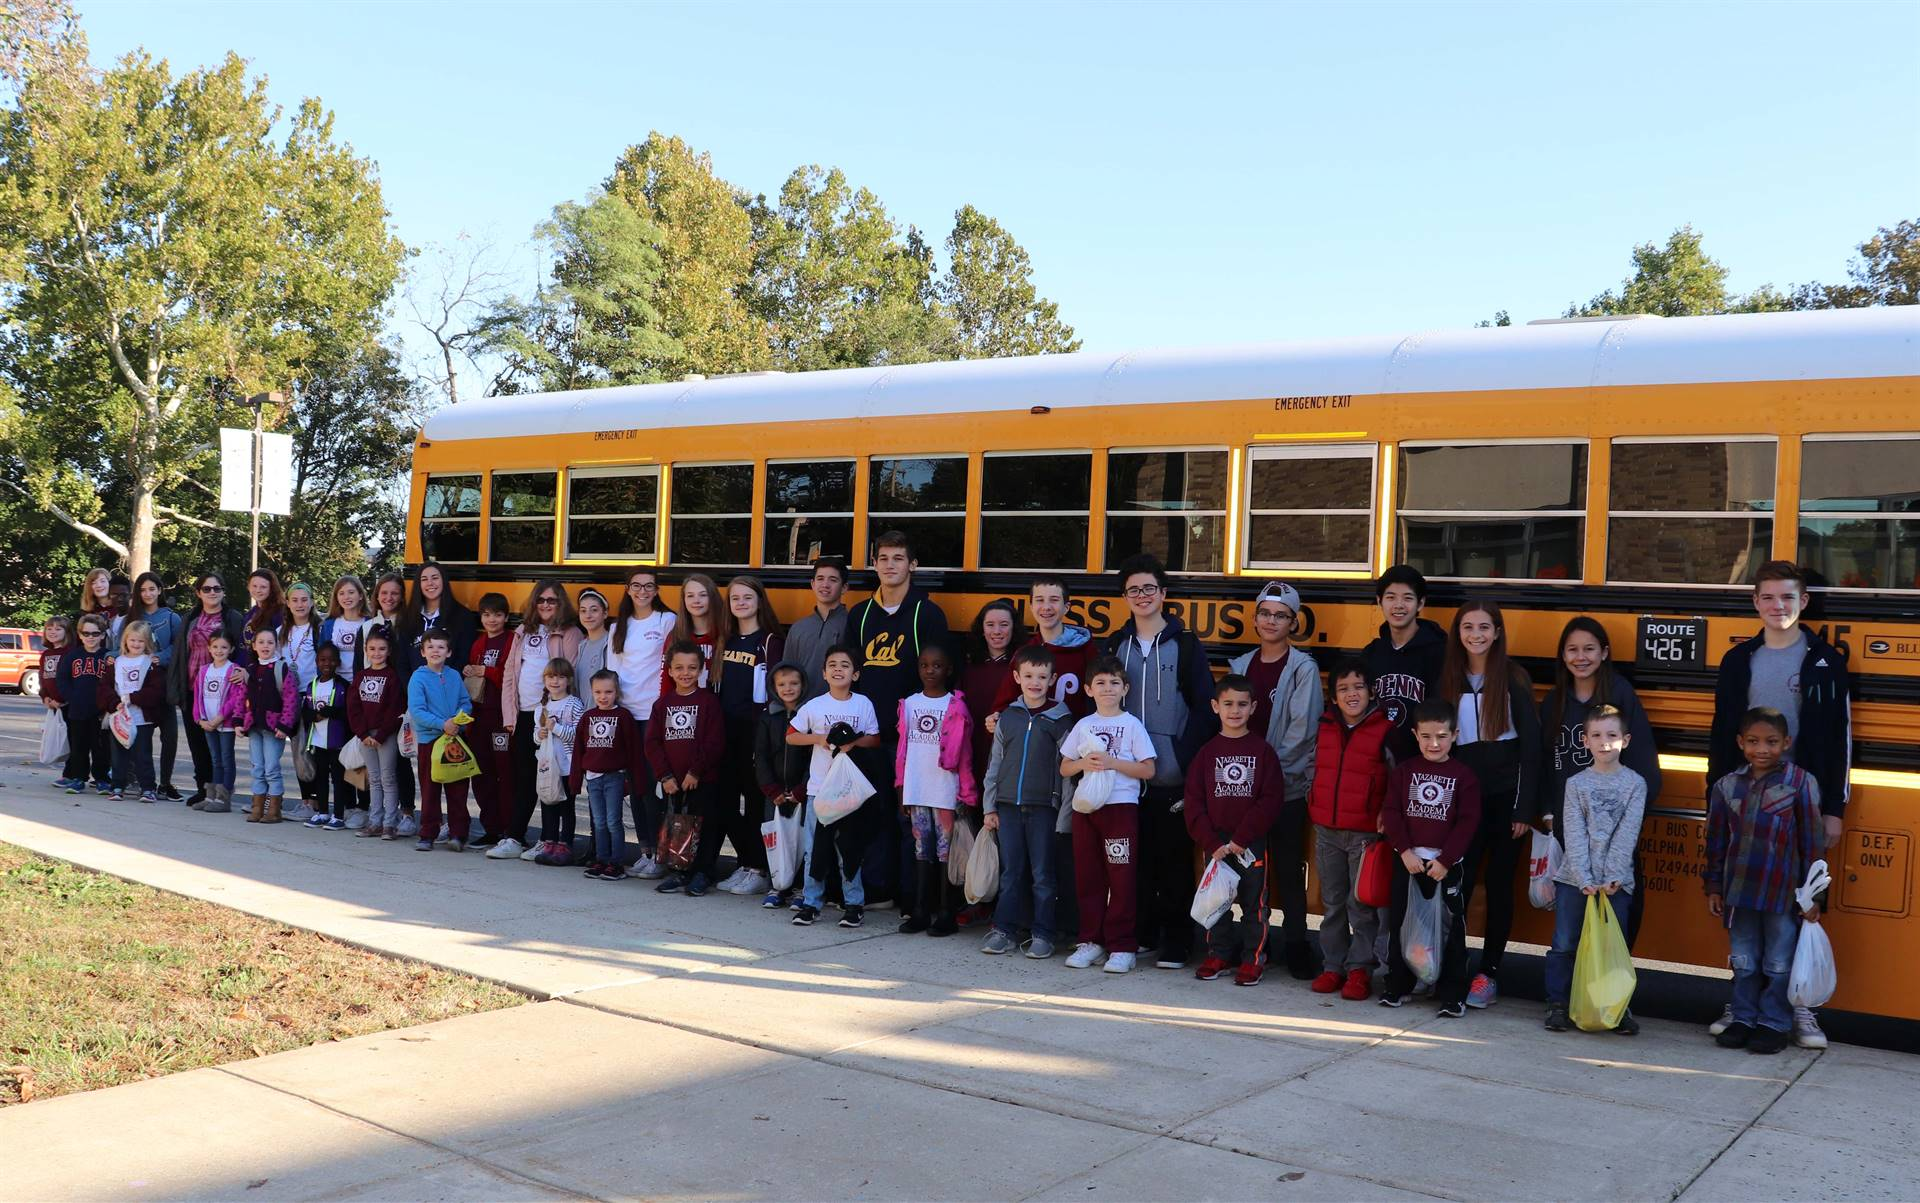 Students leaving for Field Trip